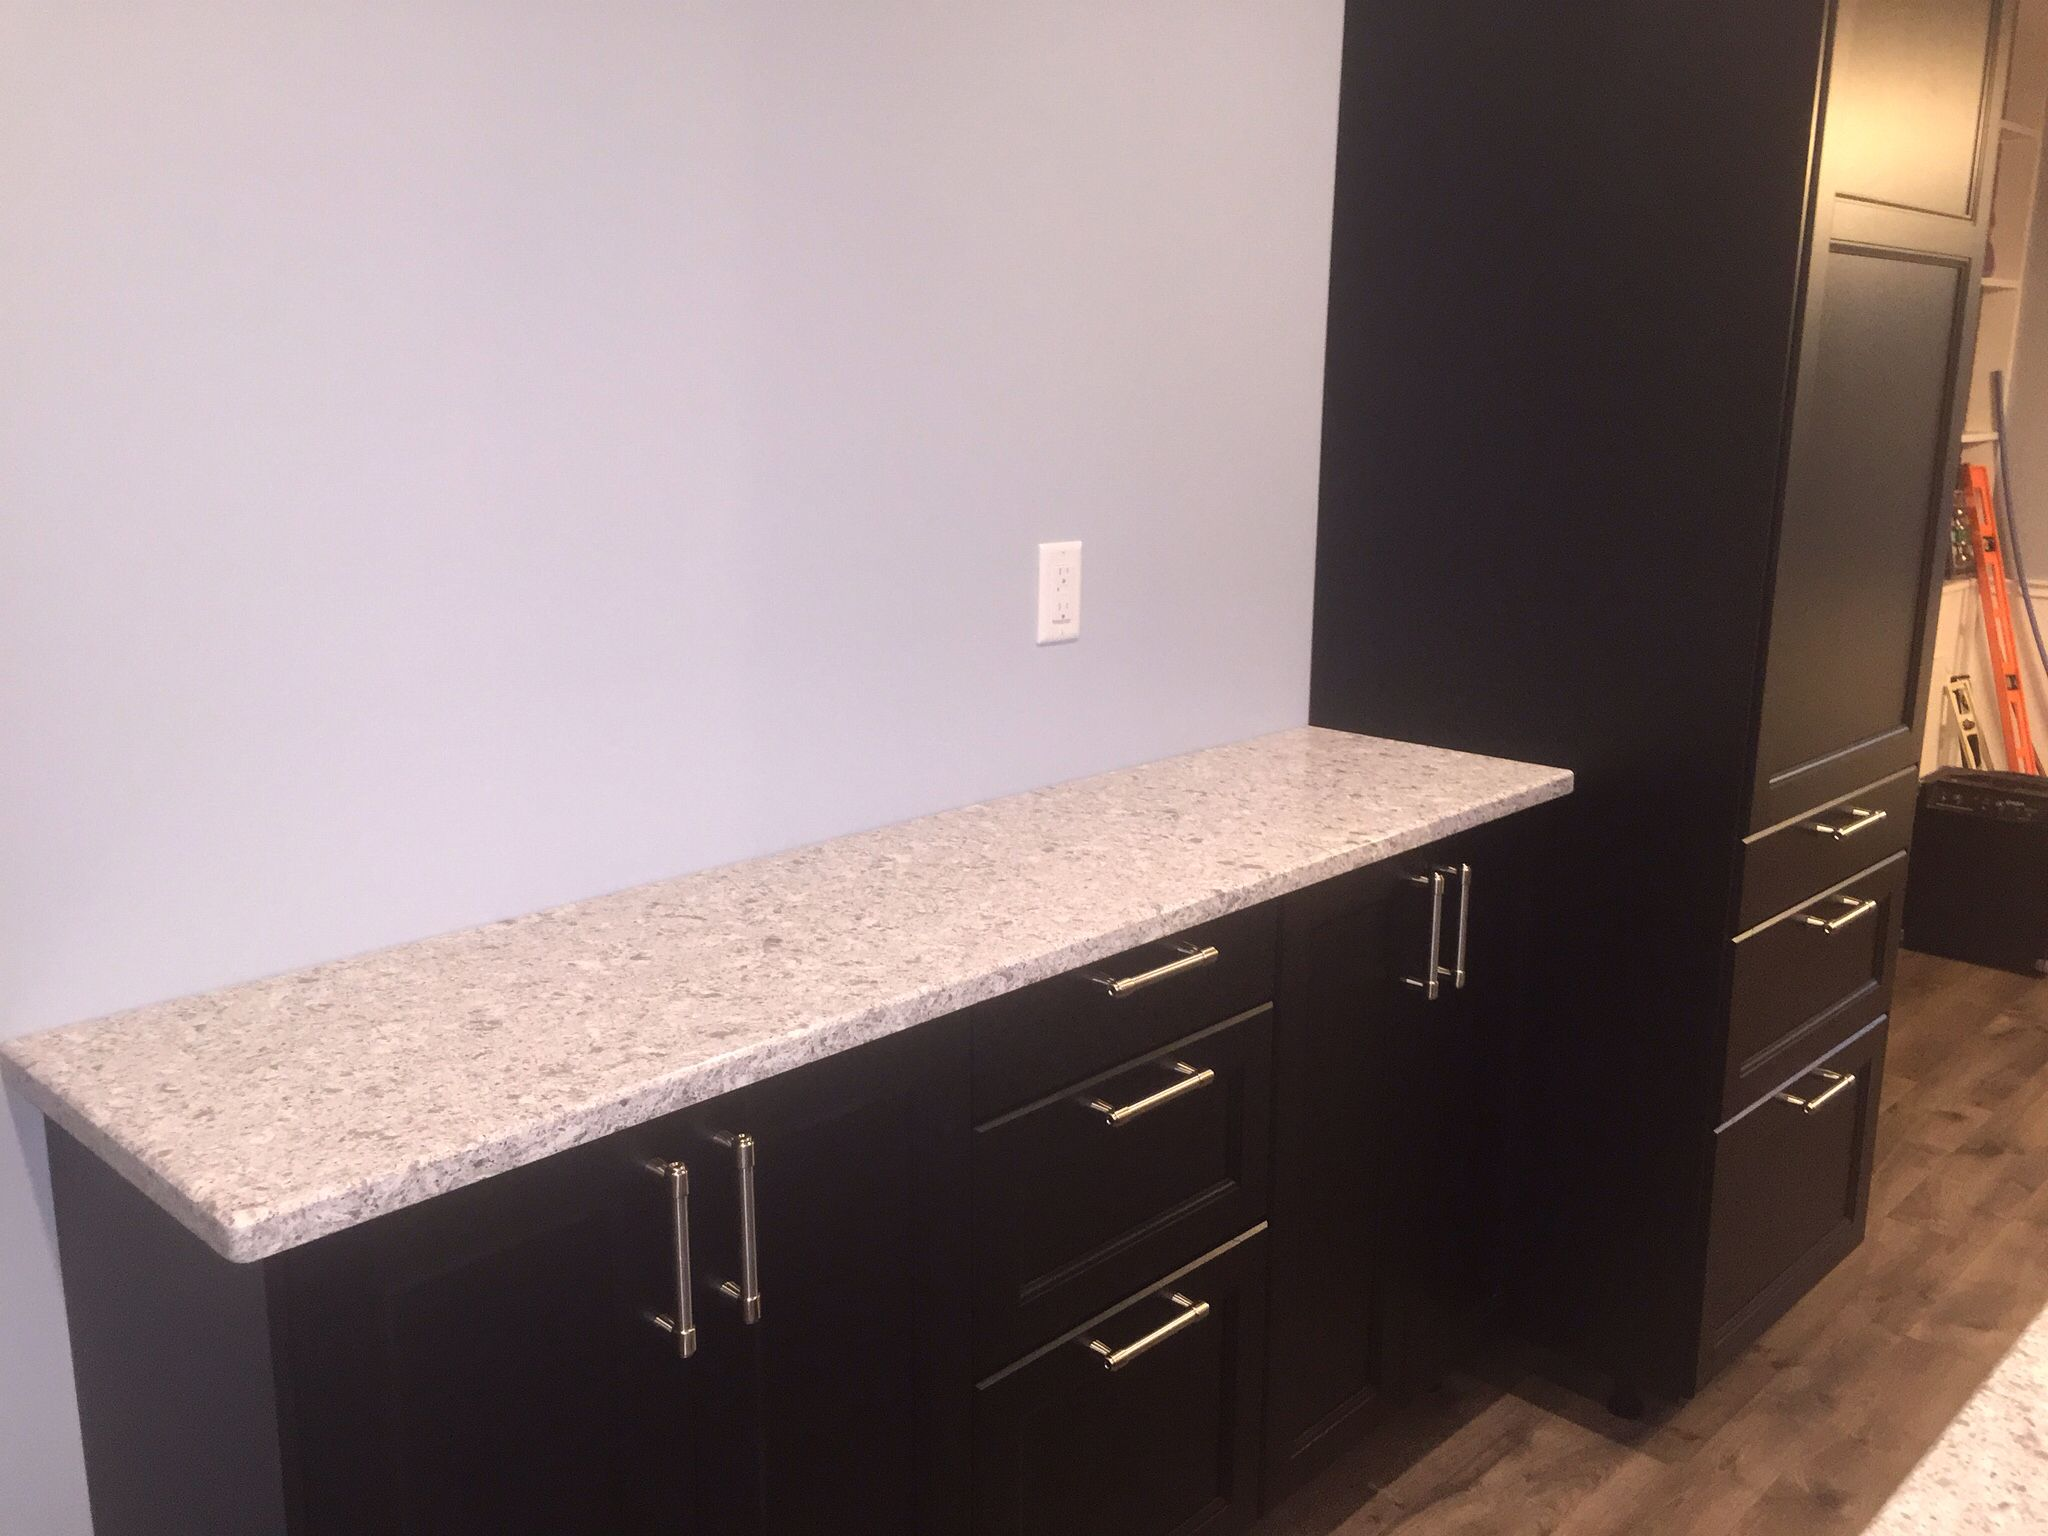 diy ikea kitchen with laxarby cabinets quartz countertops in atlantic salt and pergo grey